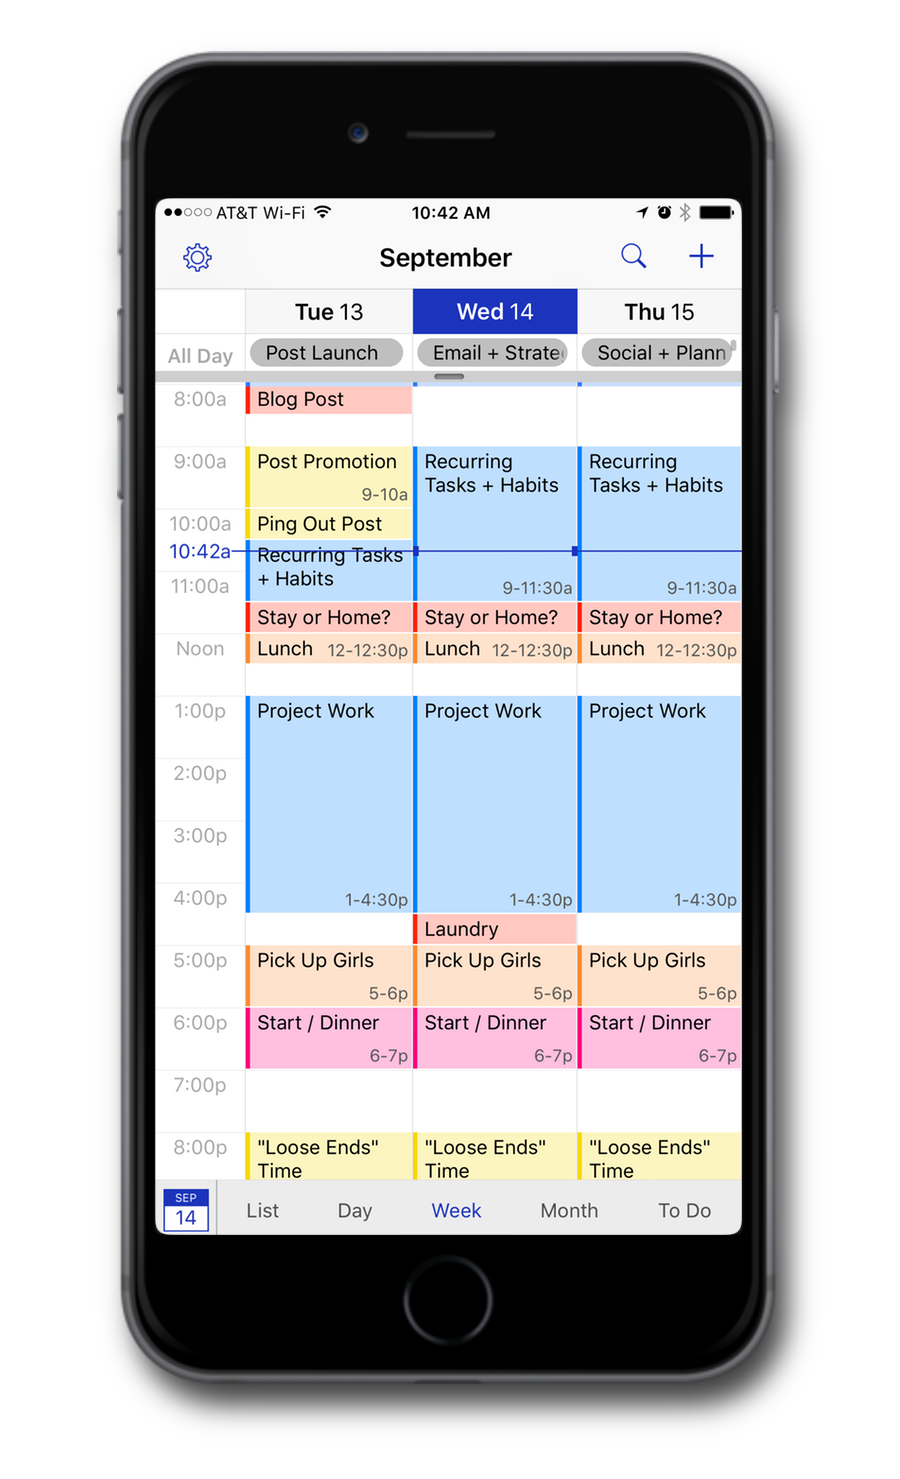 Schedule example using BusyCal for iPhone | GoffCreative.com